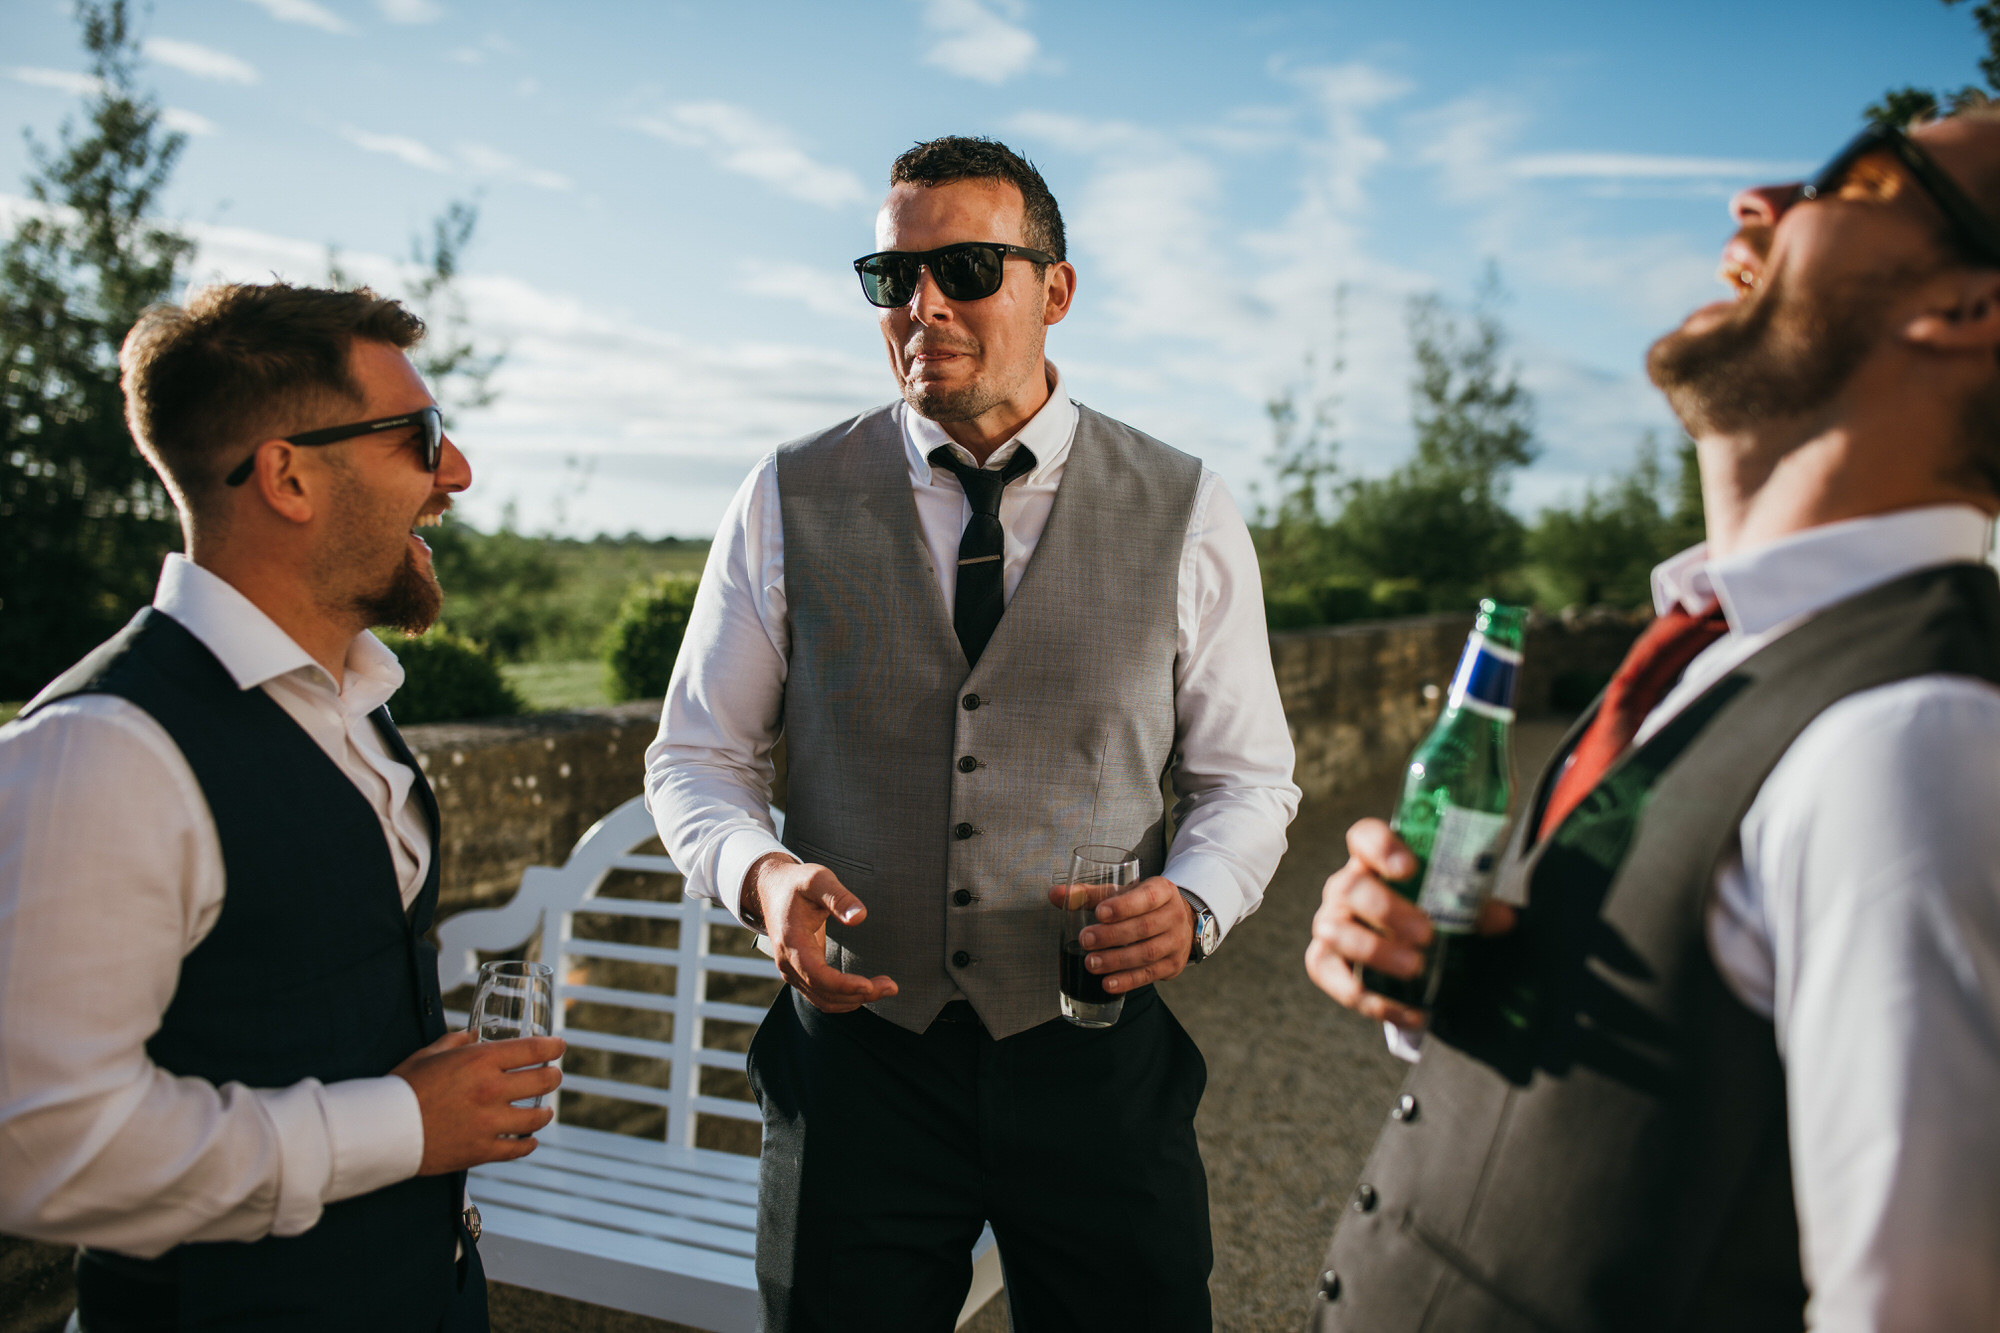 Almonry barn wedding photographer 9